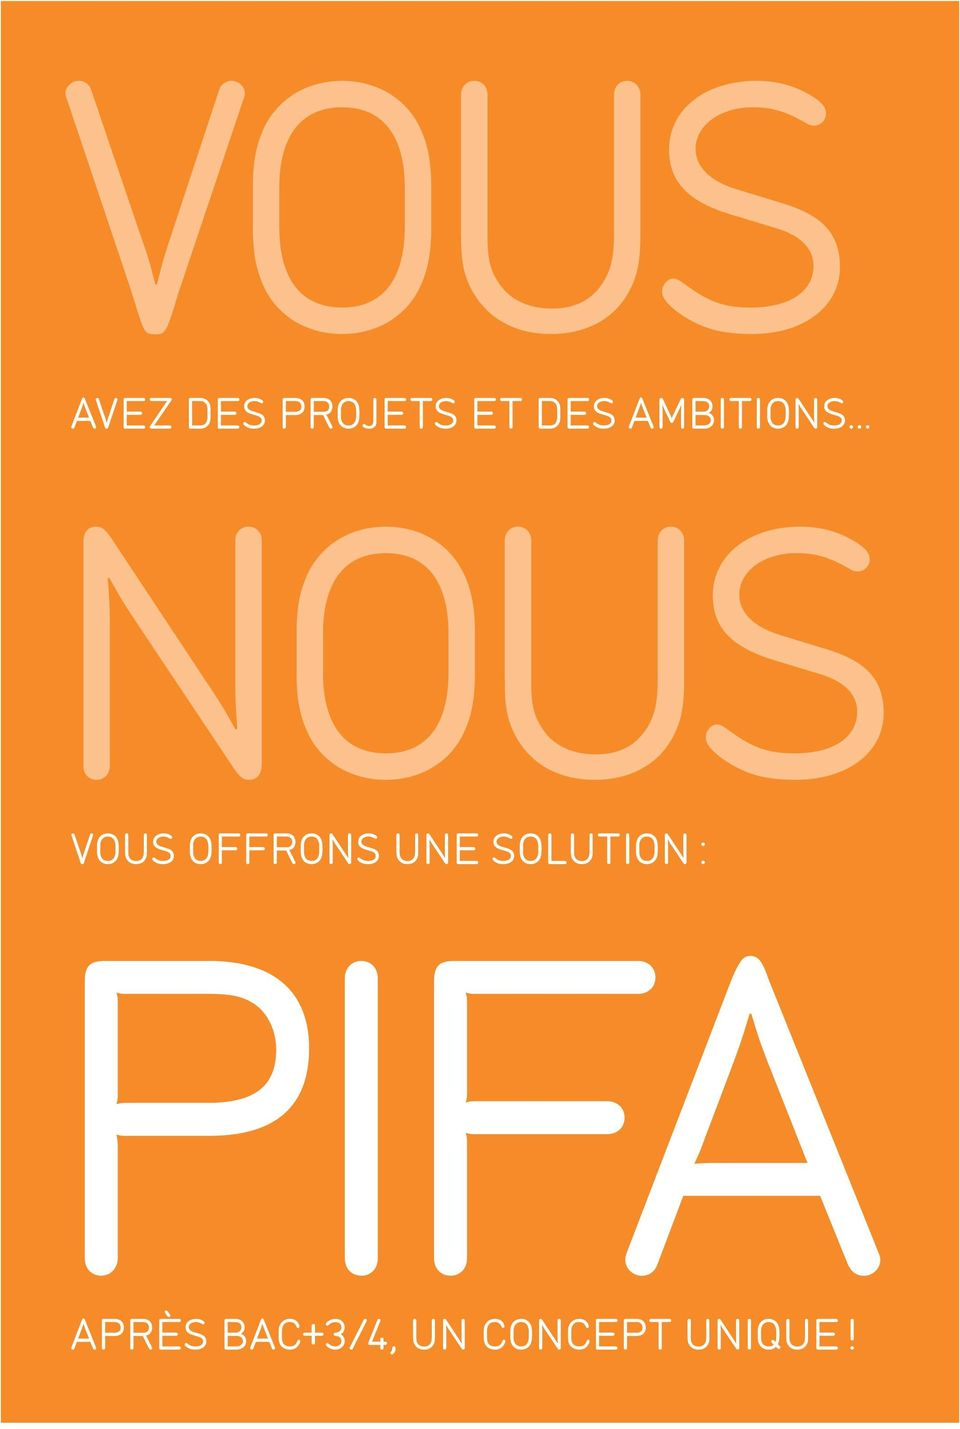 OFFRONS UNE SOLUTION : PIFA